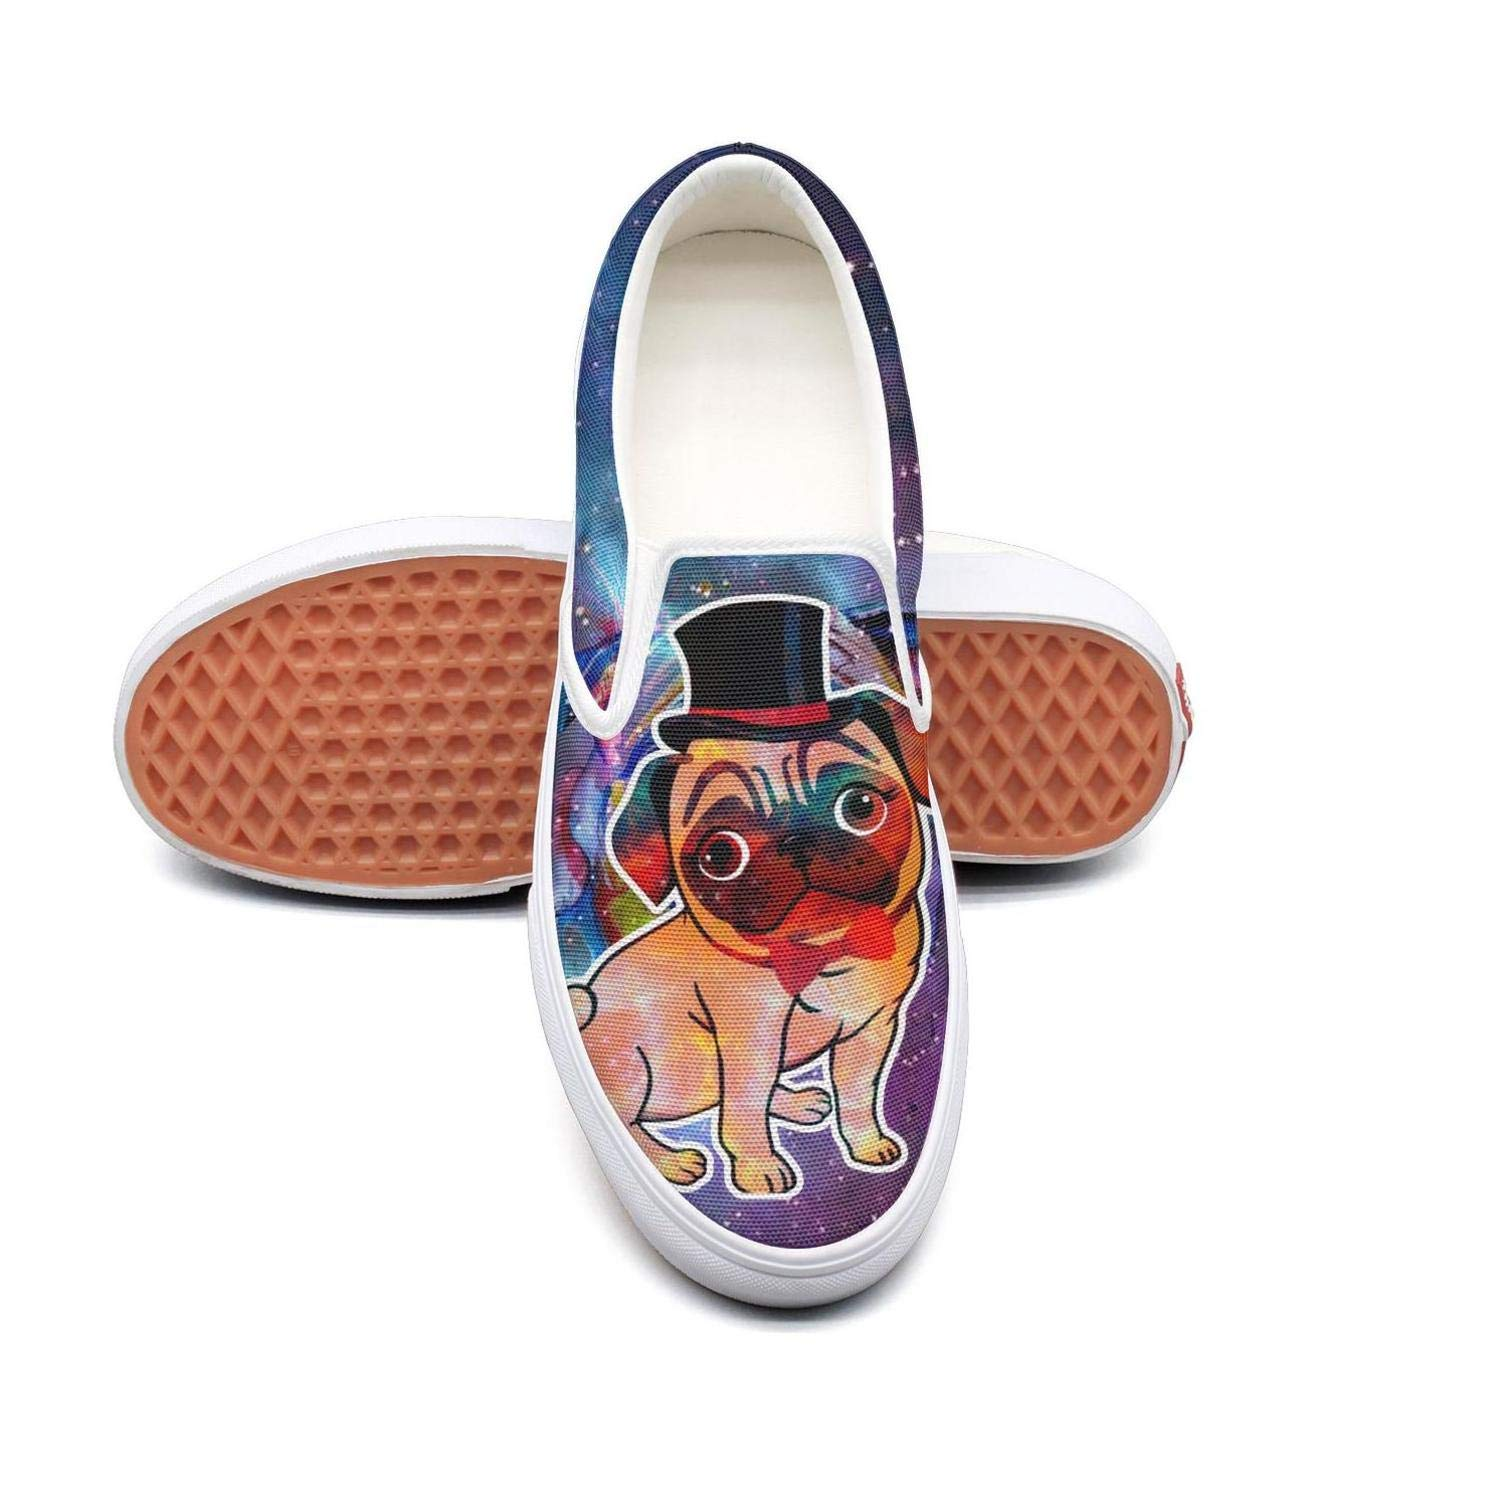 NI kingss Womens Ladies Funny Pug Dog with hat Bow Flat Fashion Casual Shoes Sneakers Print Skateboard Shoes